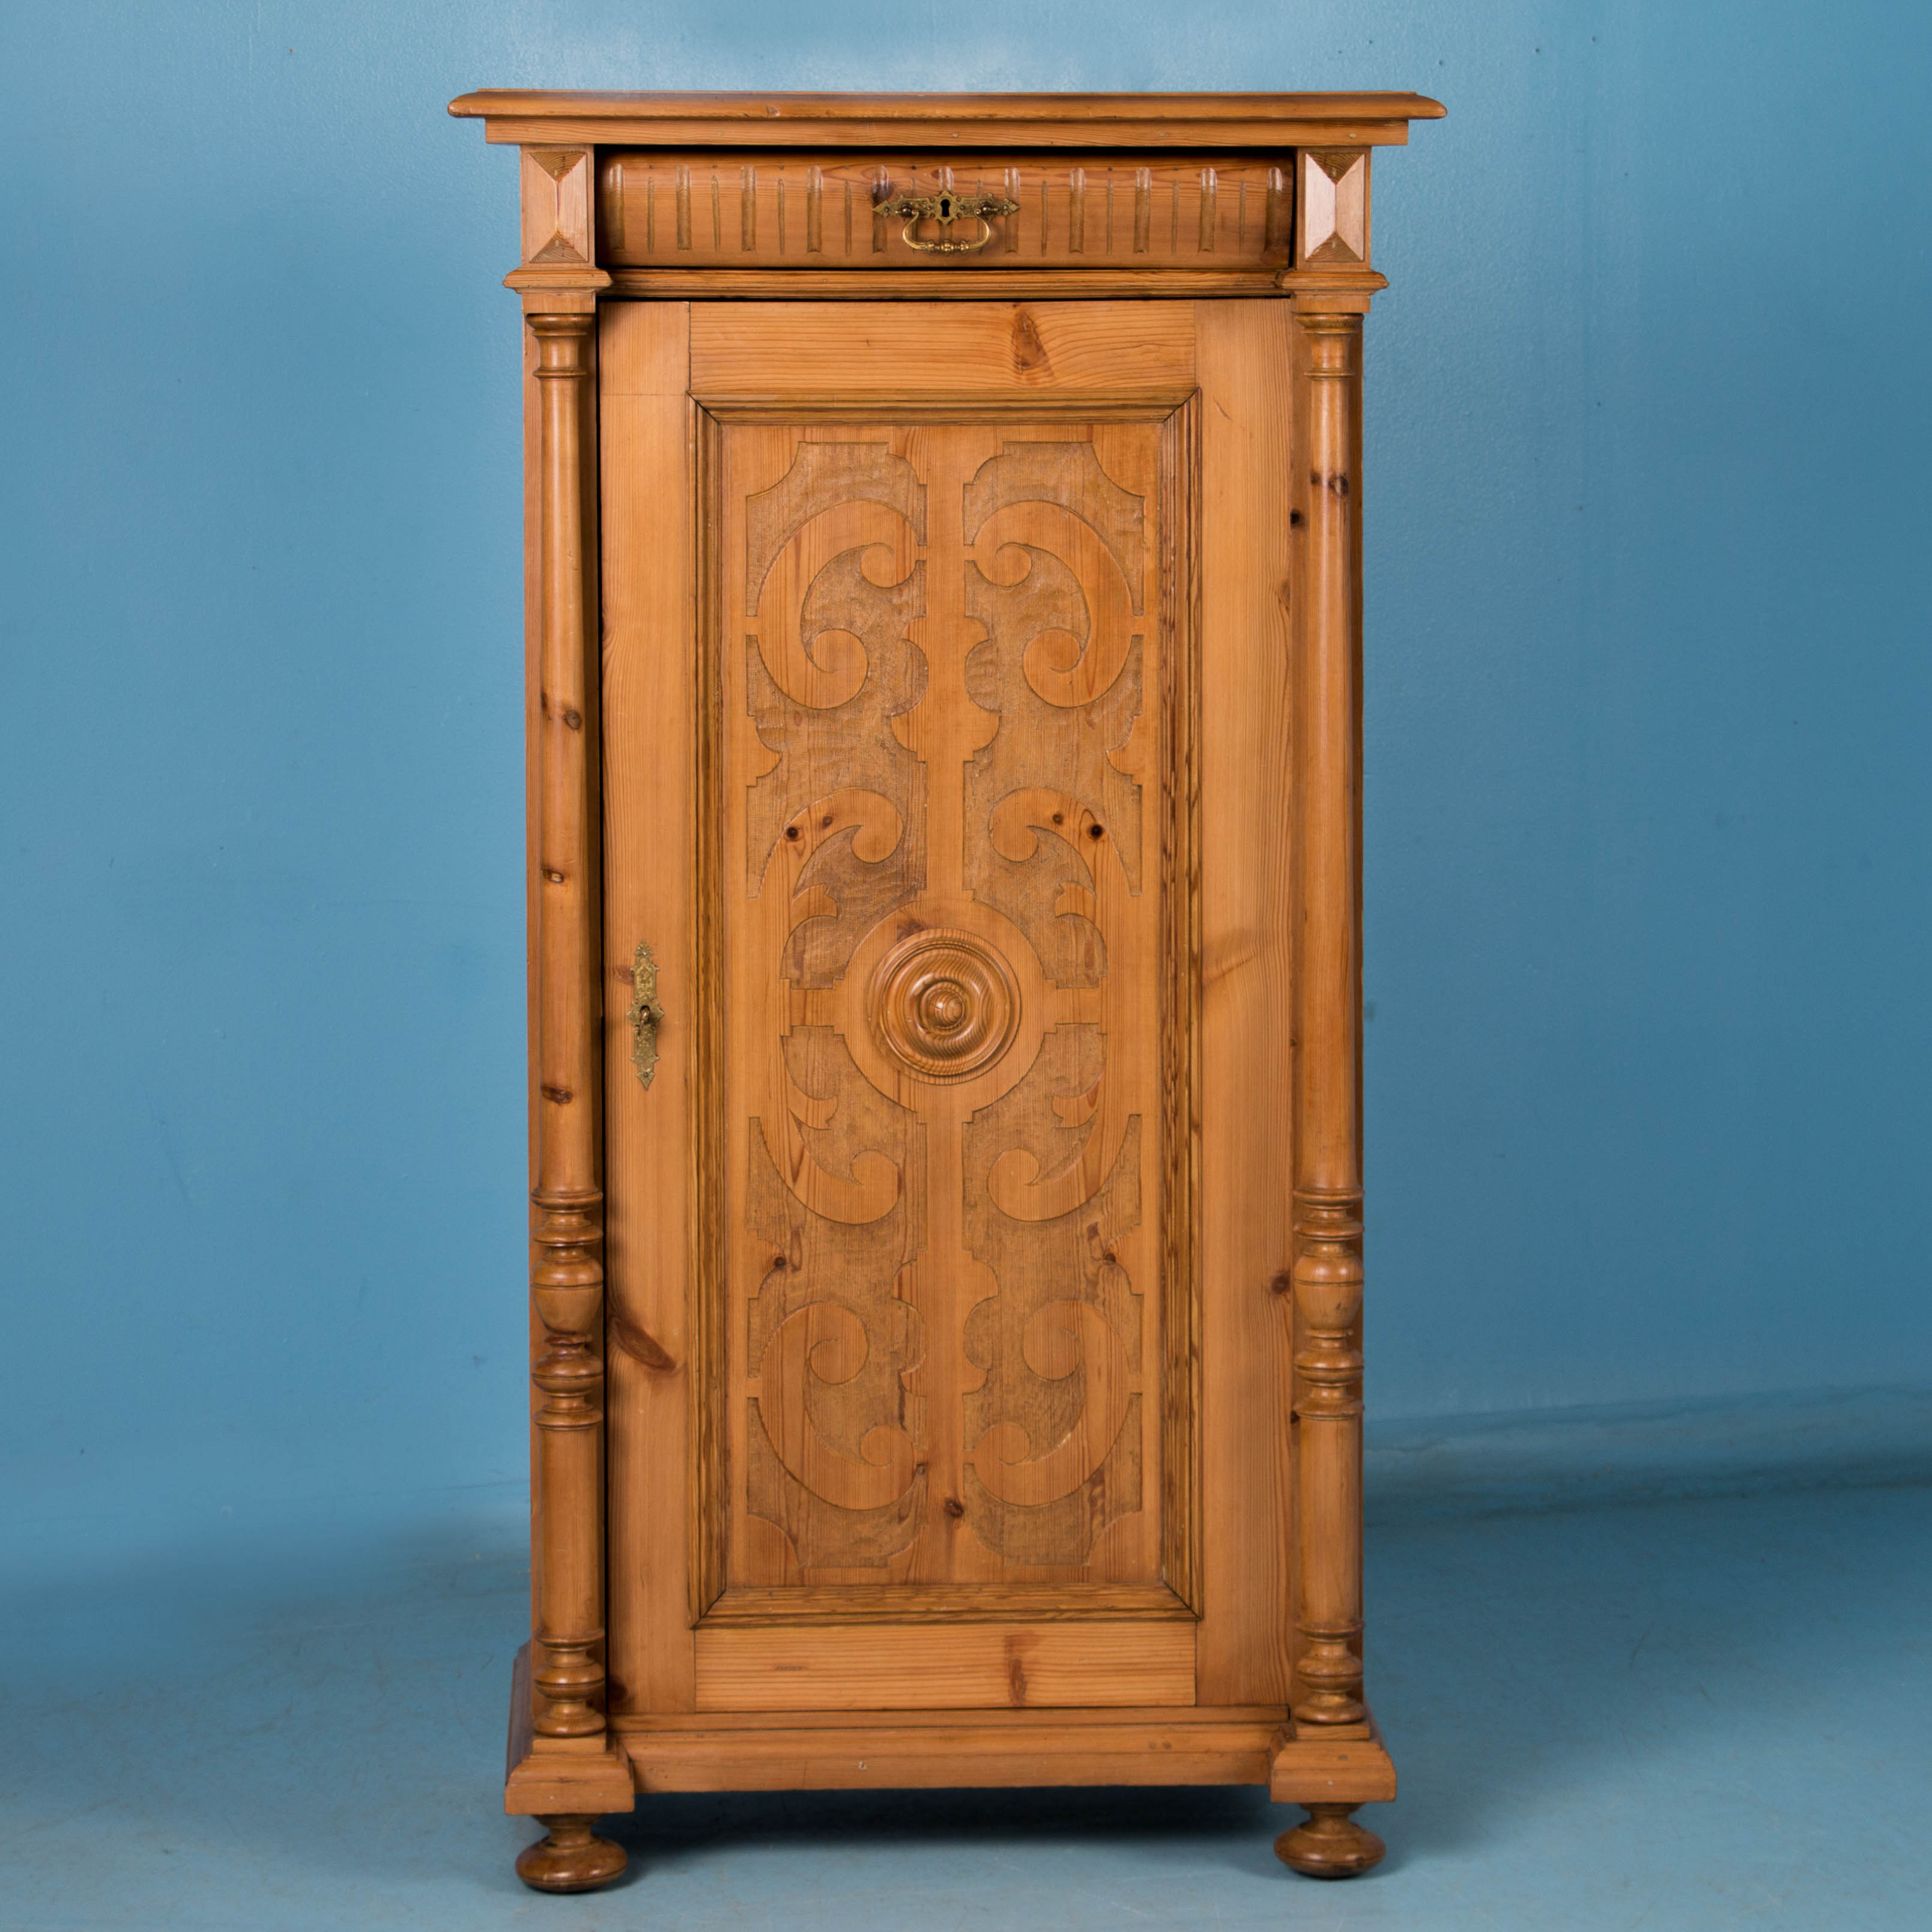 Carved Antique Single Door Pine Armoire From Denmark | eBay